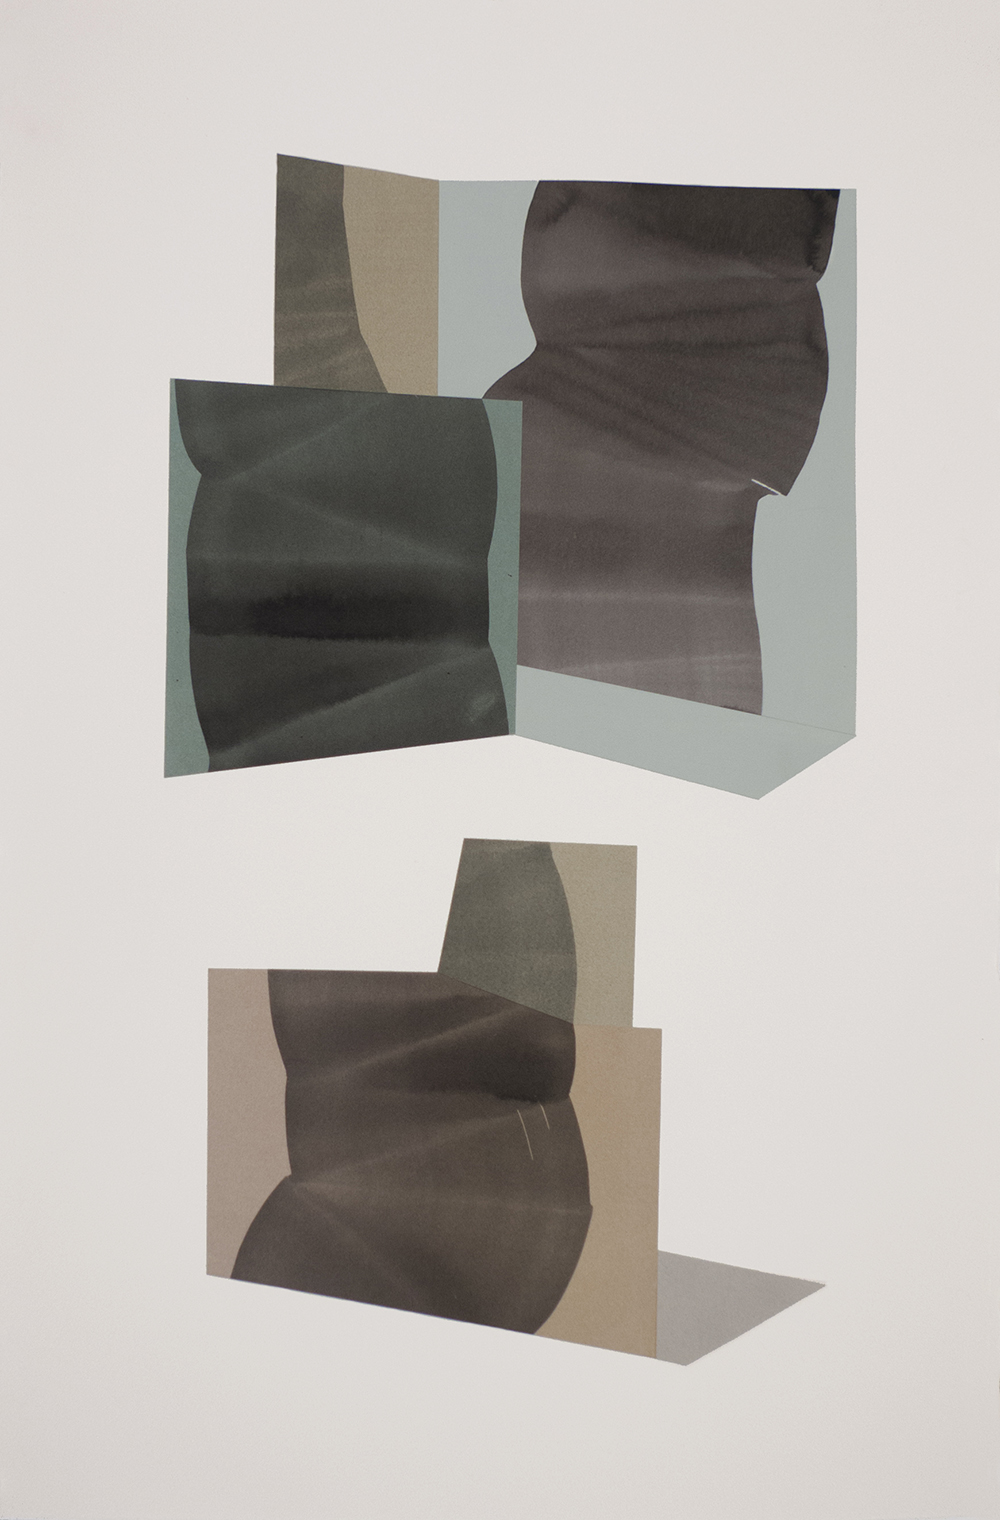 """Simone Rochon, Ombres souples no. 2 , 2017, collage, acrylic ink on Waterford paper,40"""" x 26"""" (102 x 66 cm)."""